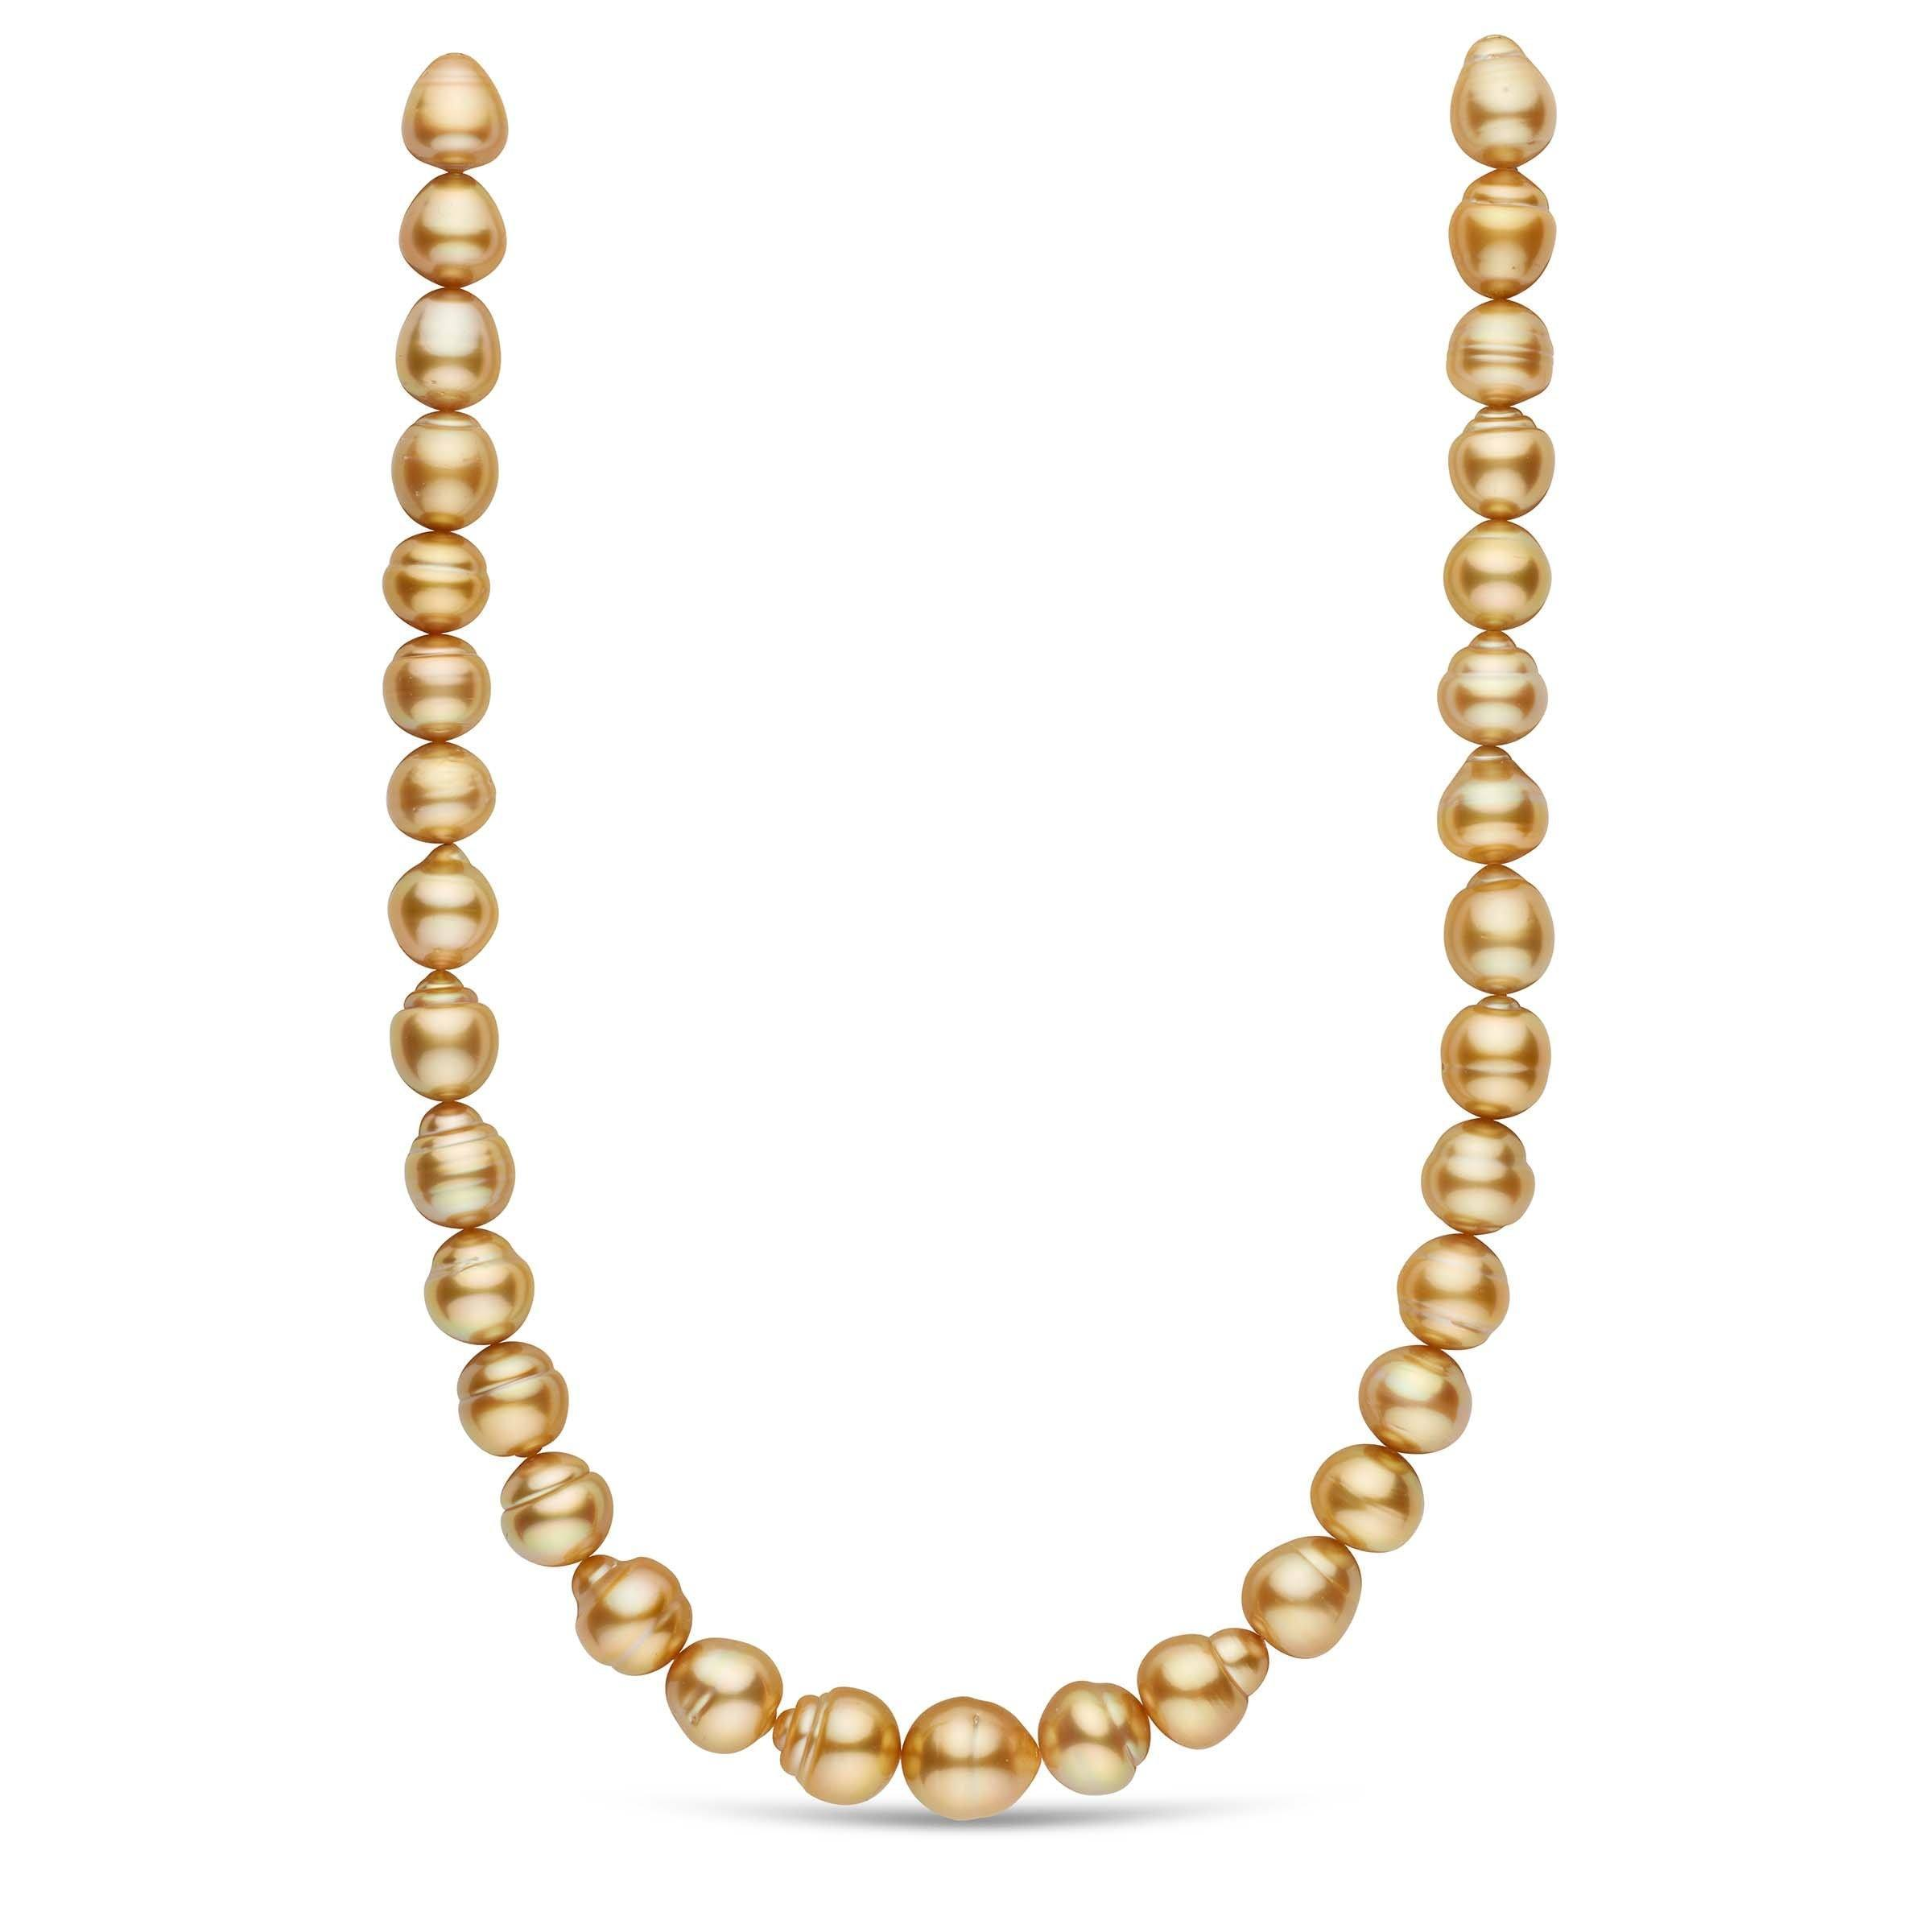 18-inch 12.0-13.8 mm AAA Baroque Golden South Sea Pearl Necklace